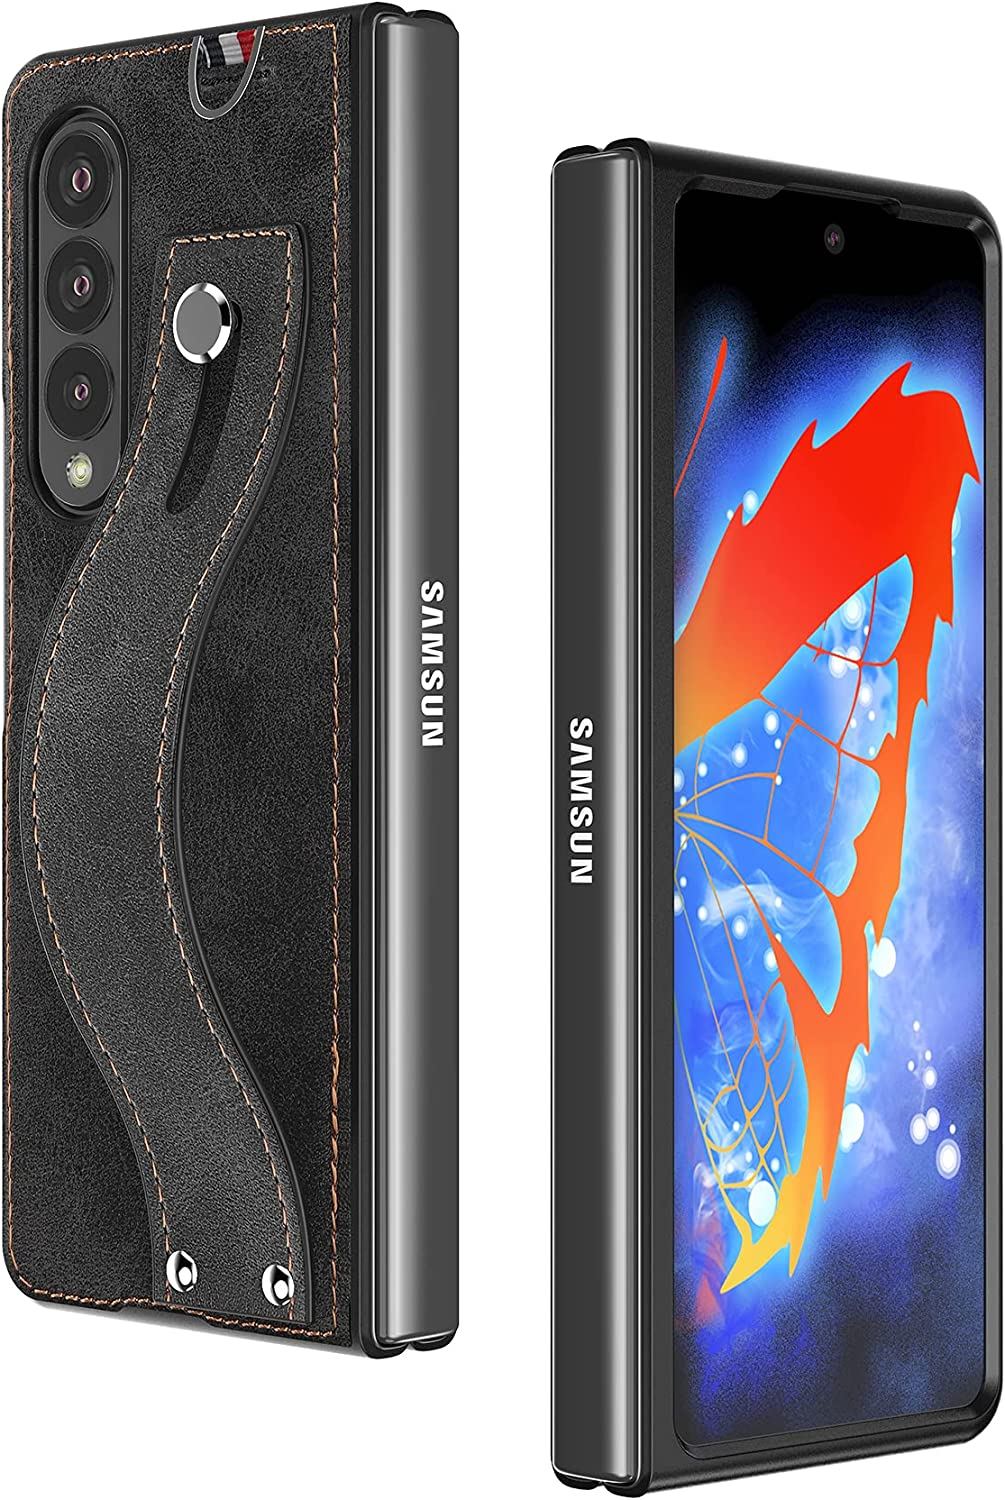 Cresee Compatible with Samsung Galaxy Z Fold 3 5G Case, with Hand Strap, PU Leather Back Cover + Hard PC Front Bumper Protective Shell Thin Fit Phone Case for Galaxy Z Fold3 2021 - Black